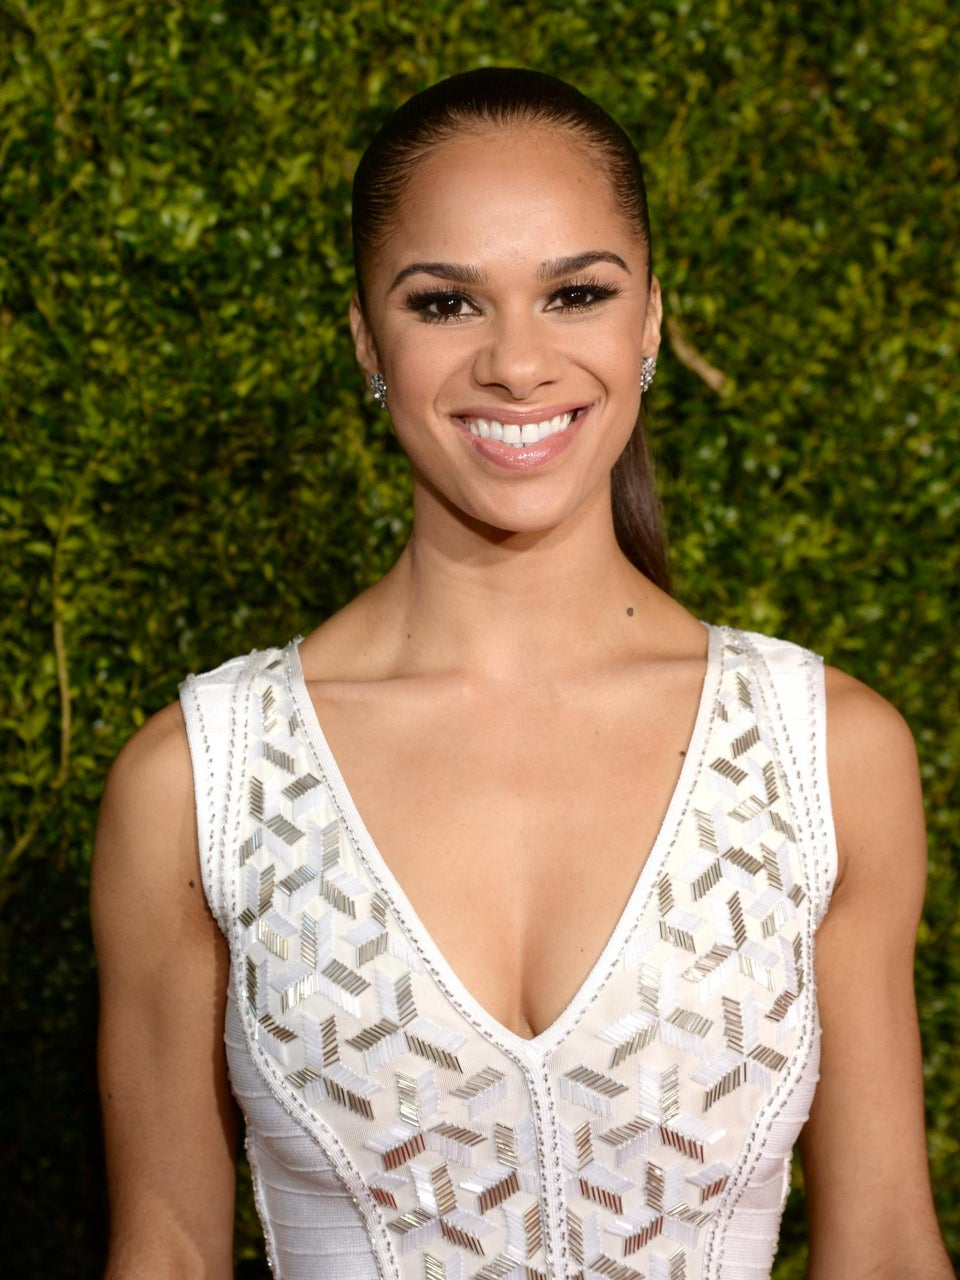 Ballerina Misty Copeland Reveals Her Post-Ballet Plans